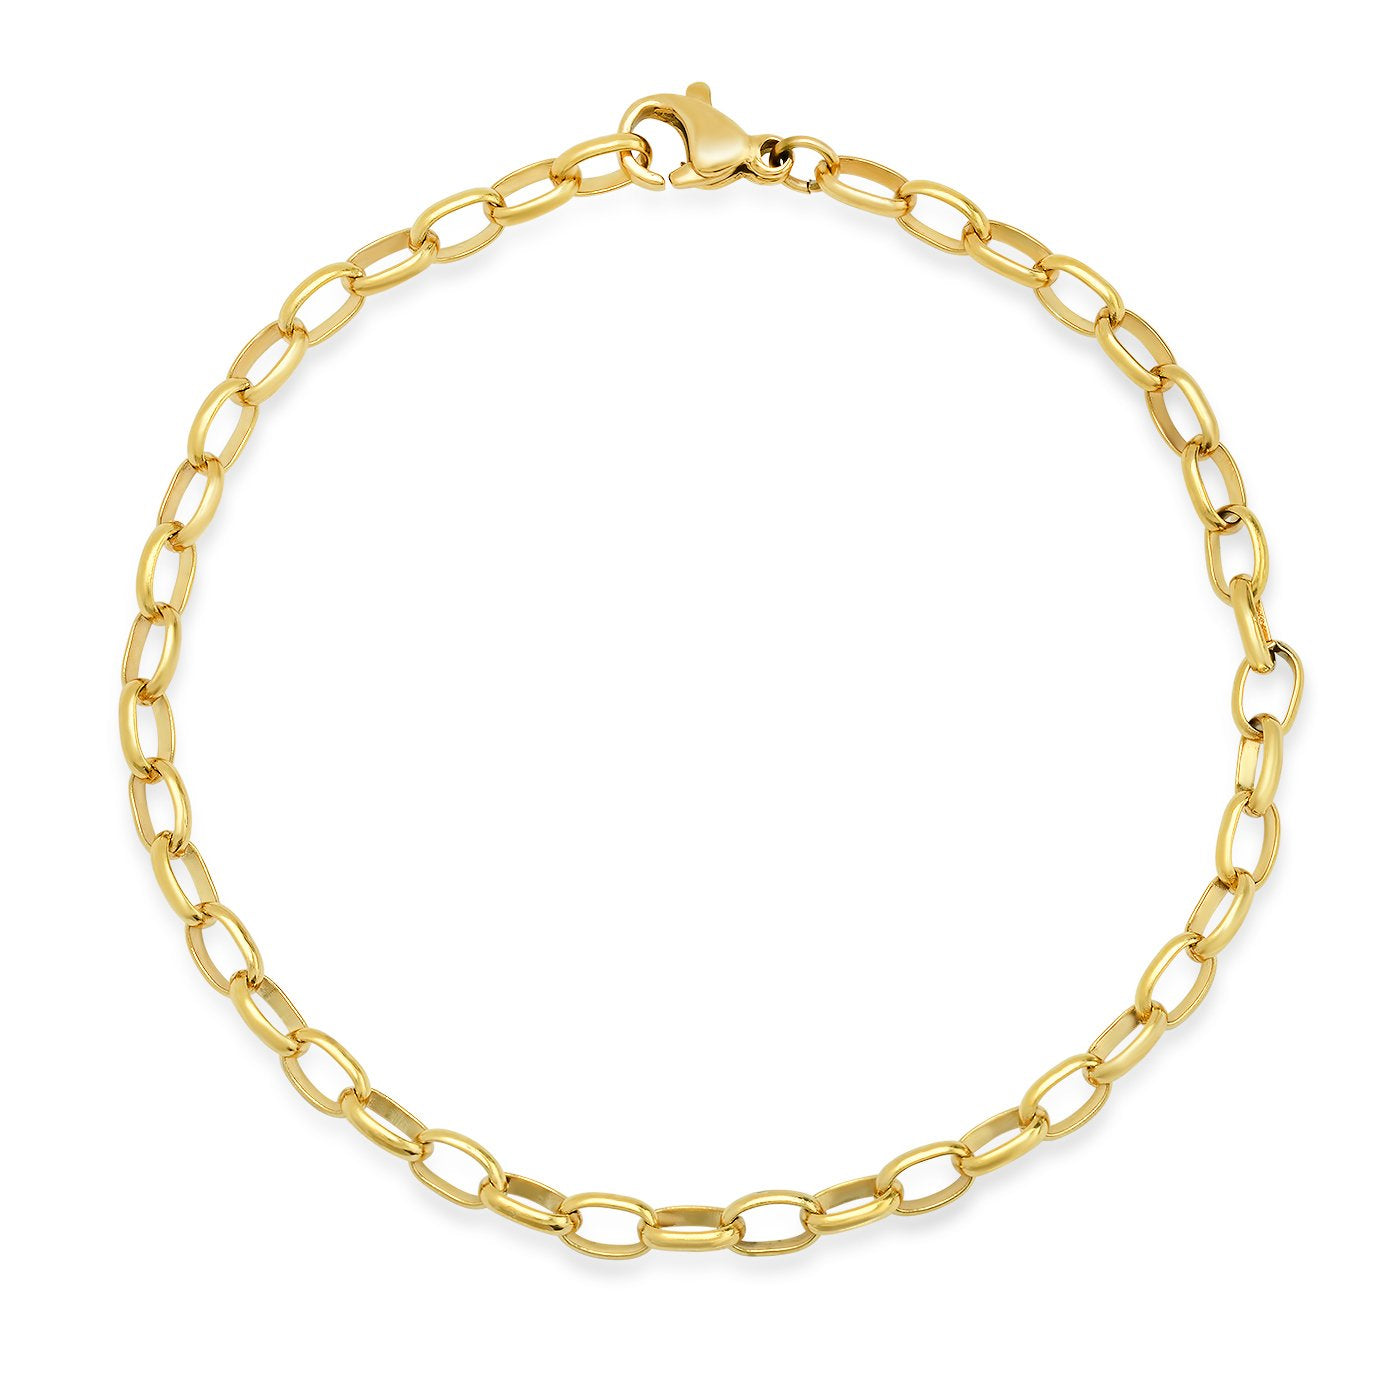 Oval Cable Chain Link Bracelet